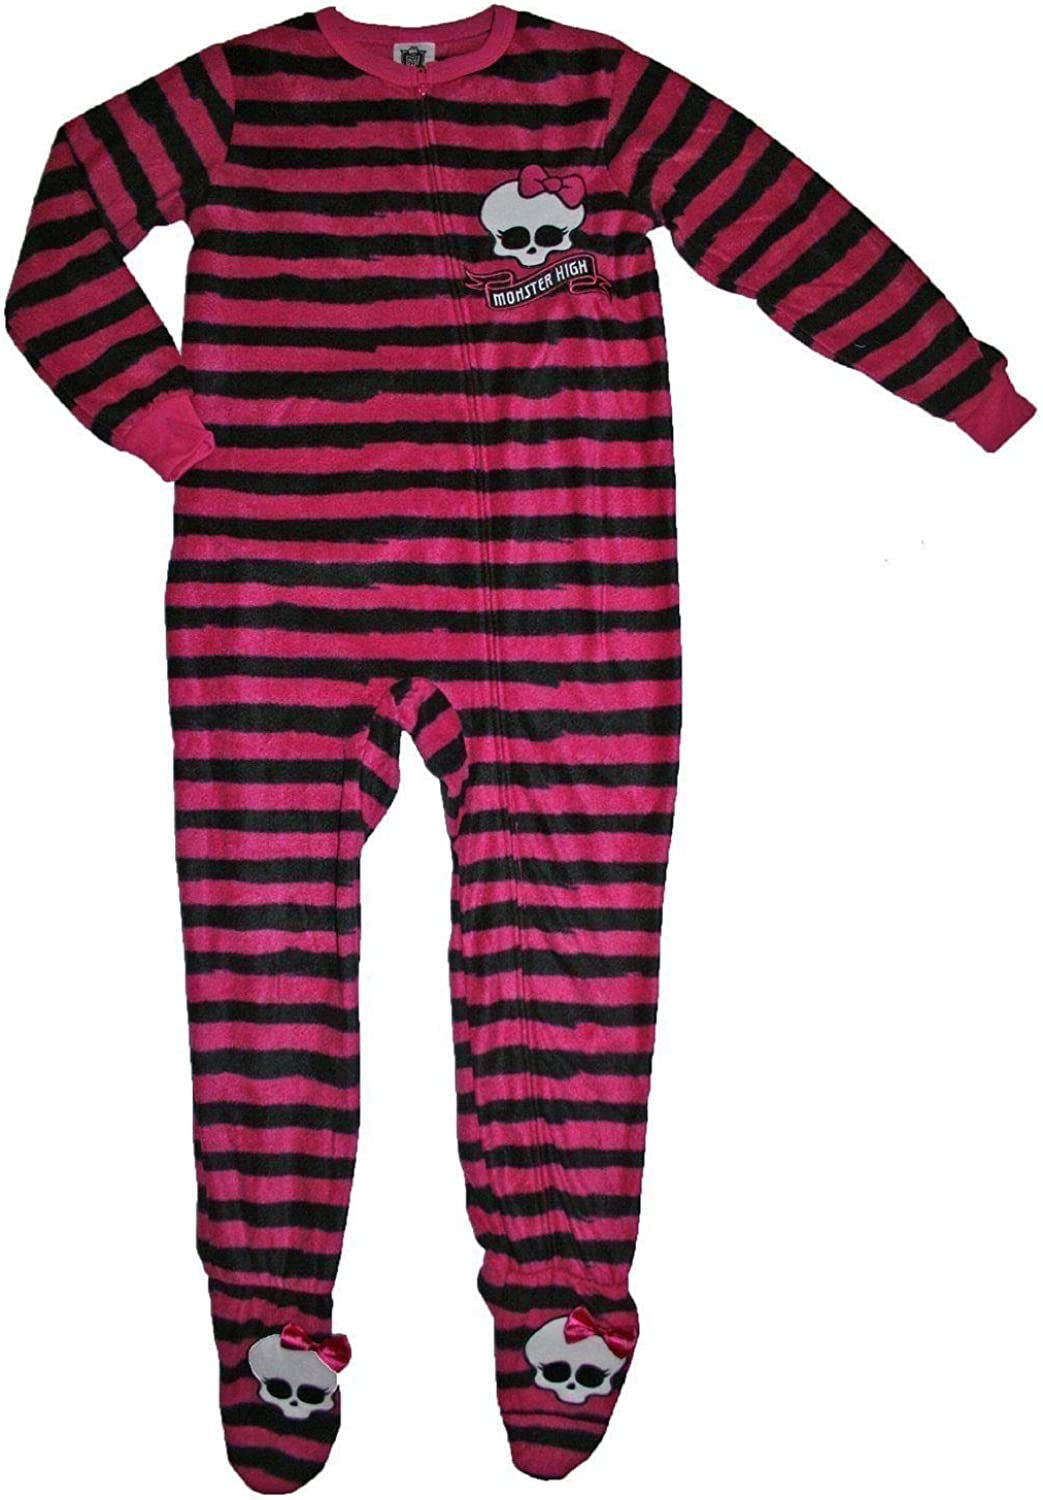 Monster High Girl Footed Blanket Sleeper Pajama Size XL 14